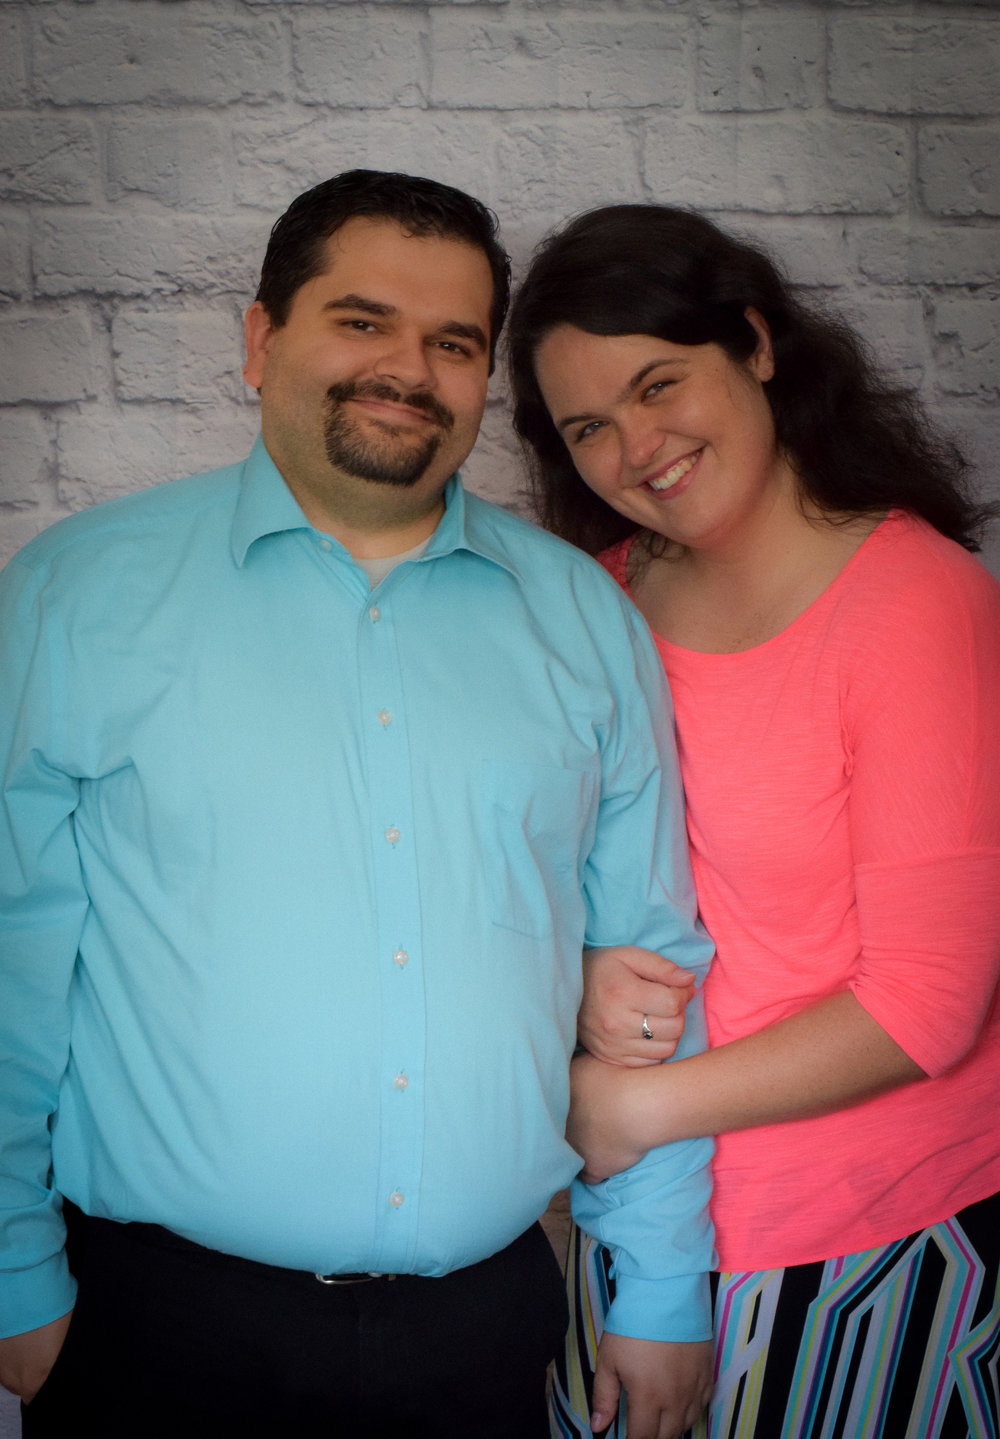 Our Pastor's Assistant    Dr. Dustin Williams and his Wife Mrs. Allix